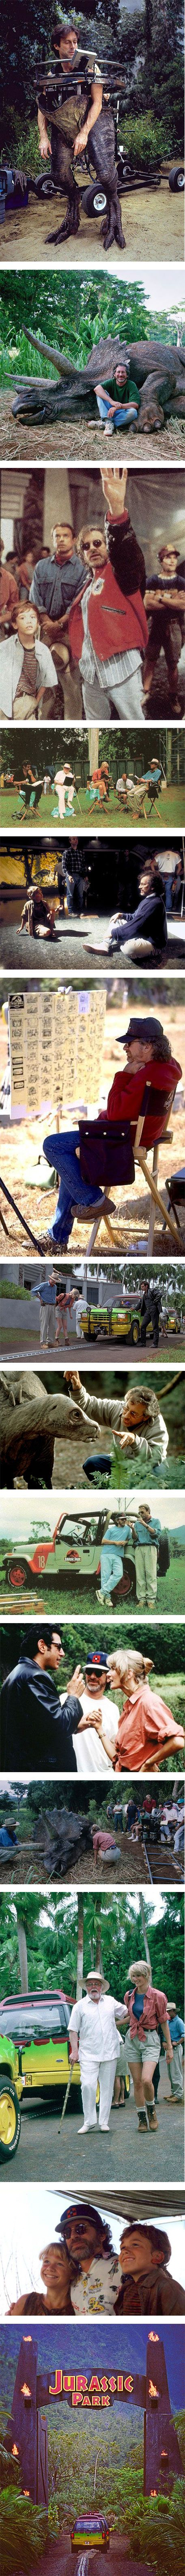 14 cool behind the scenes photos of Jurassic Park via Nuji.com